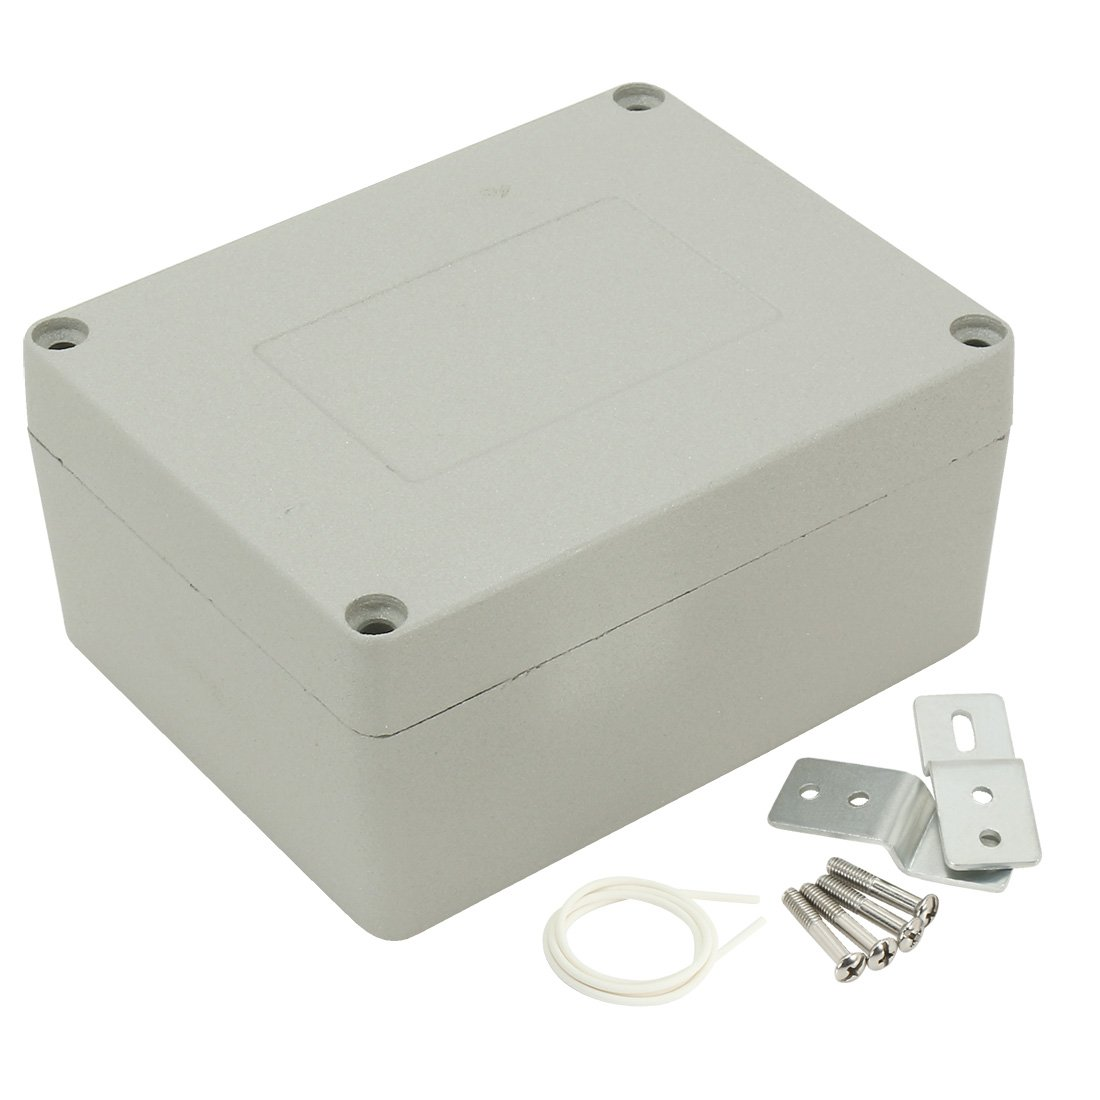 uxcell 4.5''x3.5''x2.3'' (115mmx90mmx58mm) Aluminum Junction Box Universal Electric Project Enclosure w Two Horns